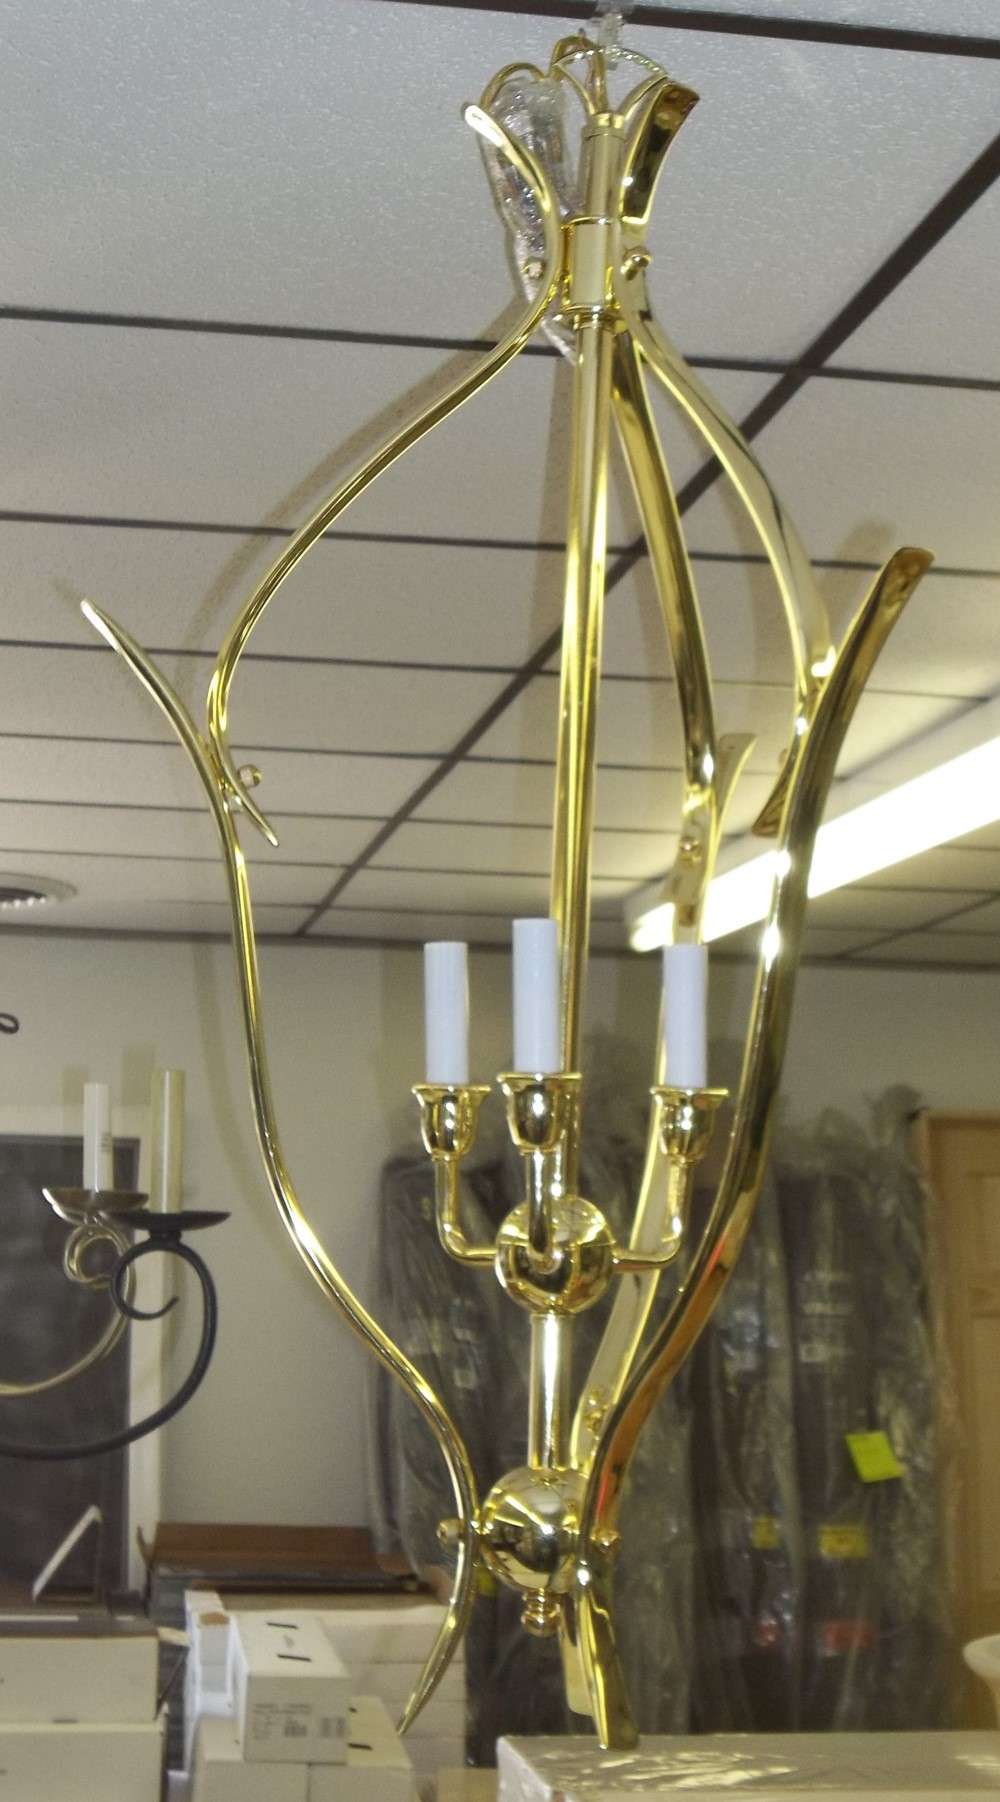 3 light Polished Brass $23.00